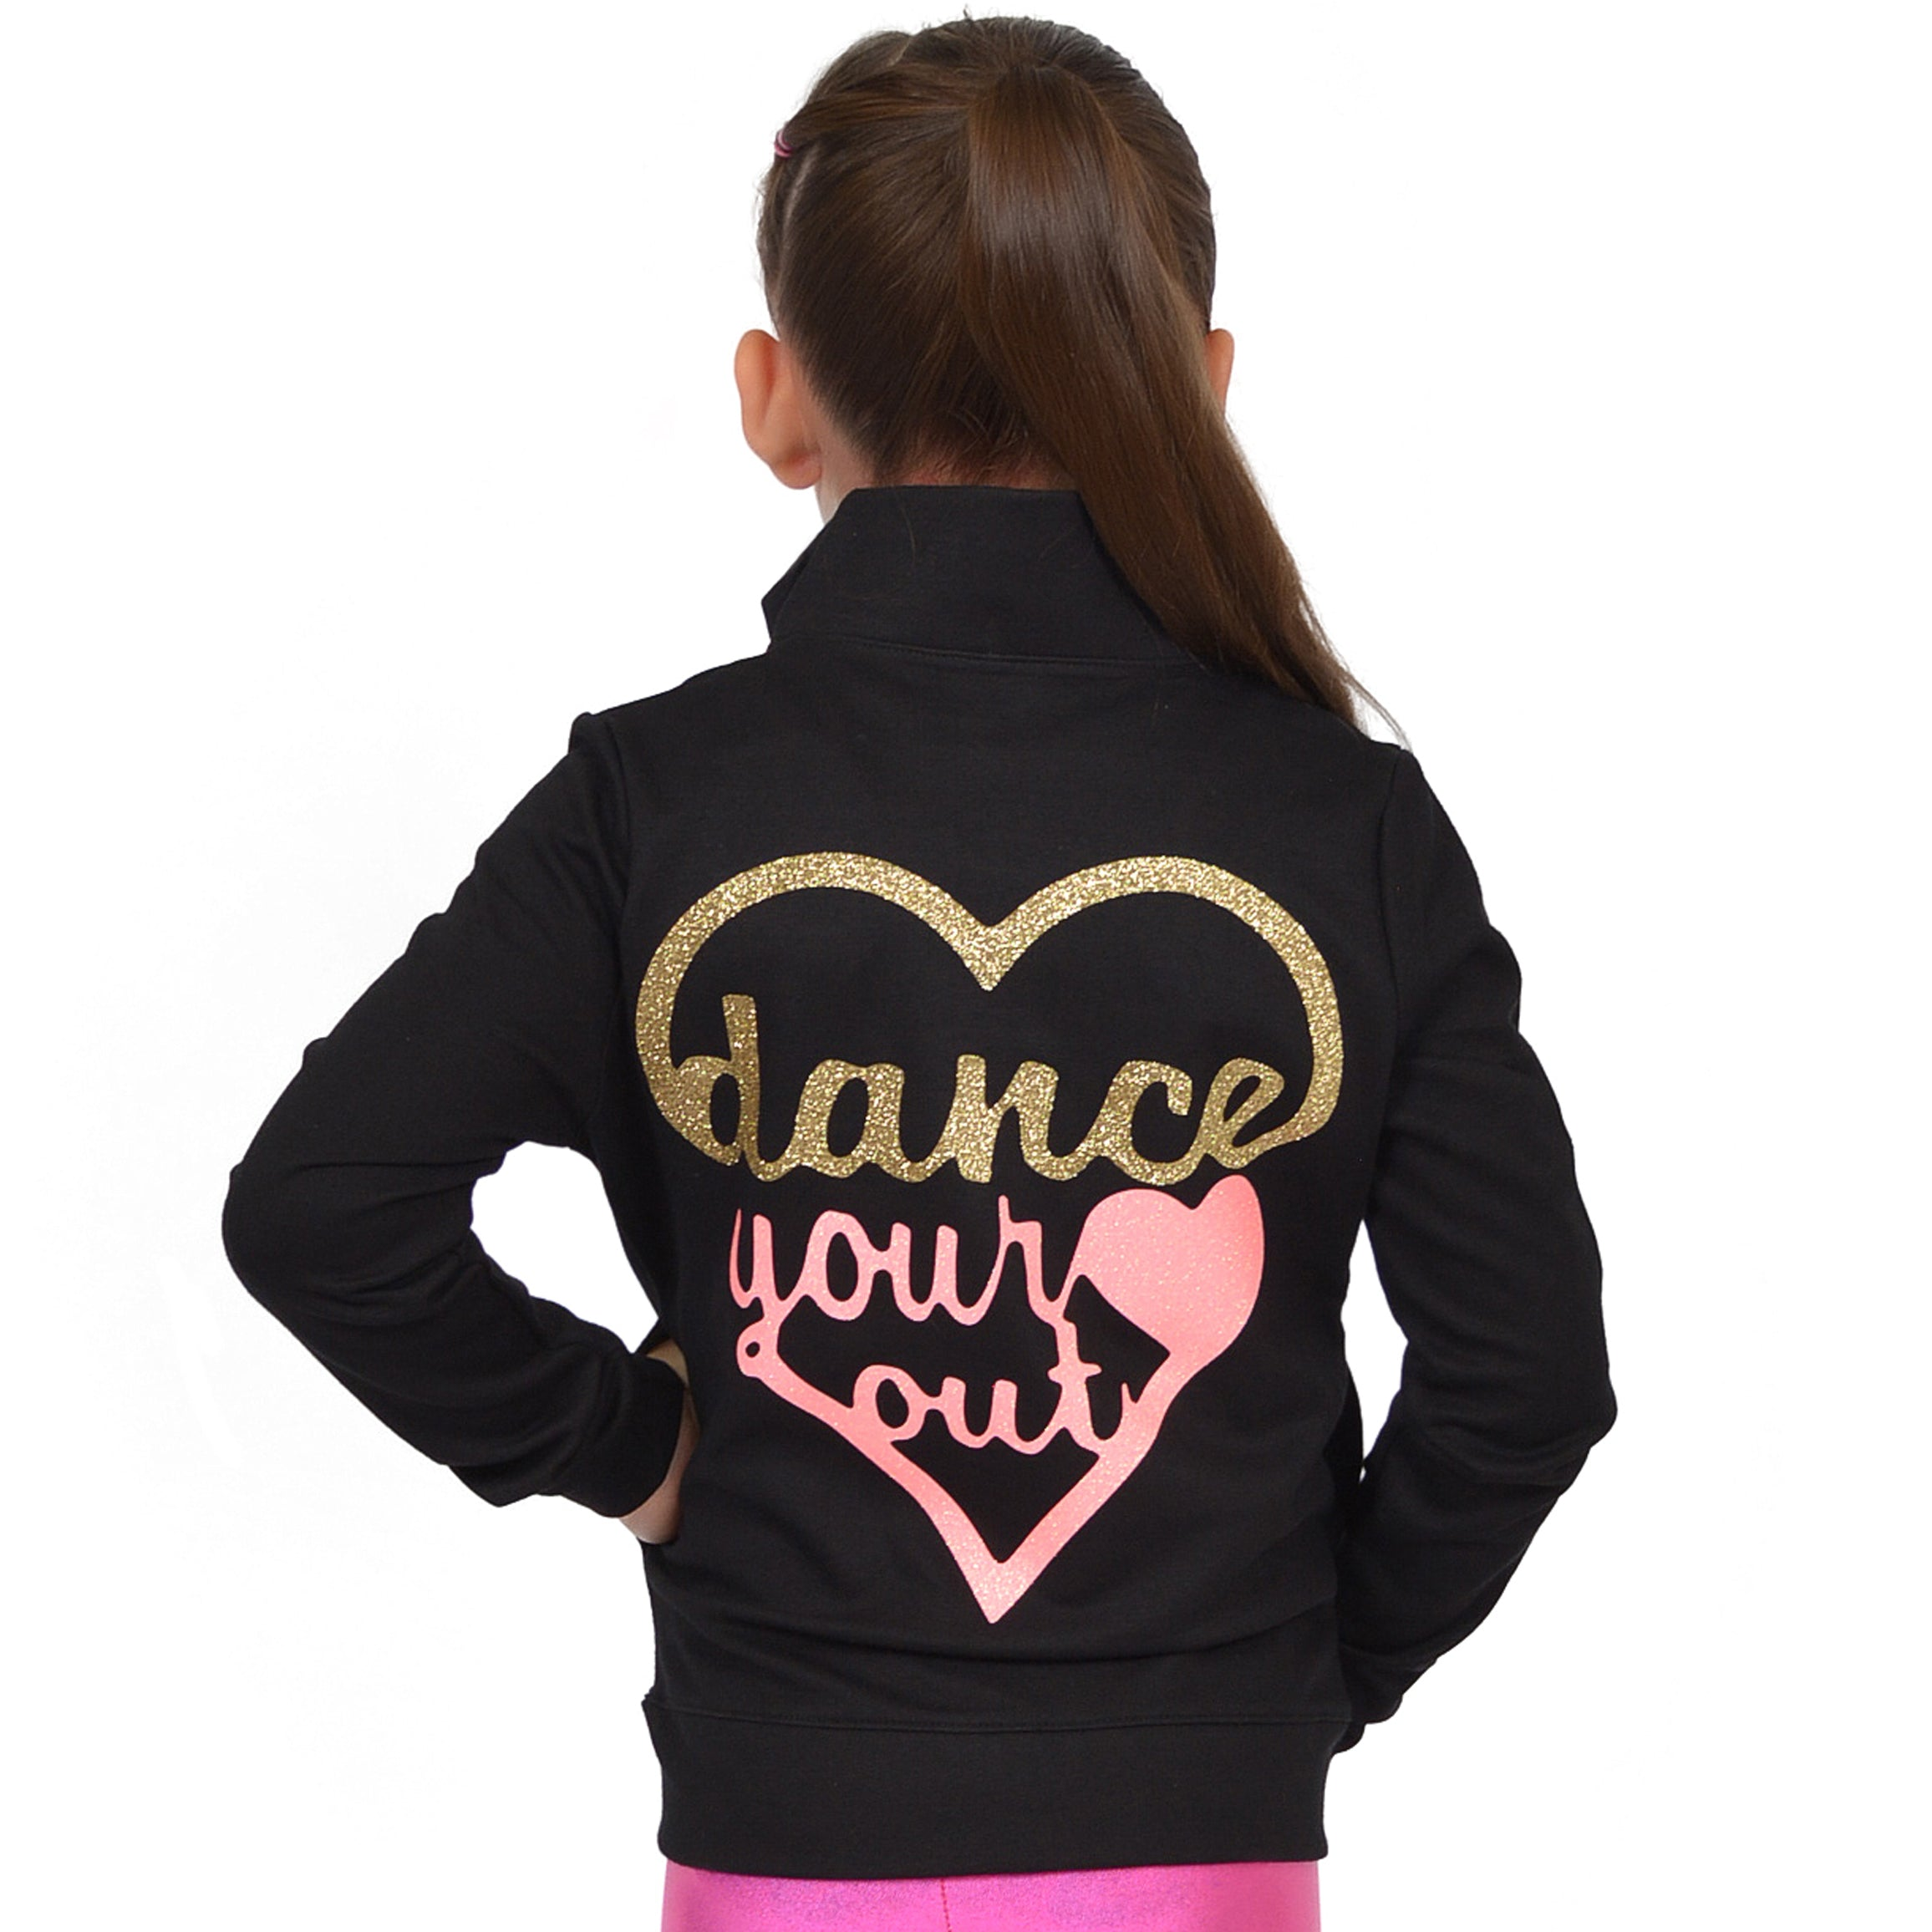 Girl's GLITTER Dance Your Heart Out Warm Up Jacket